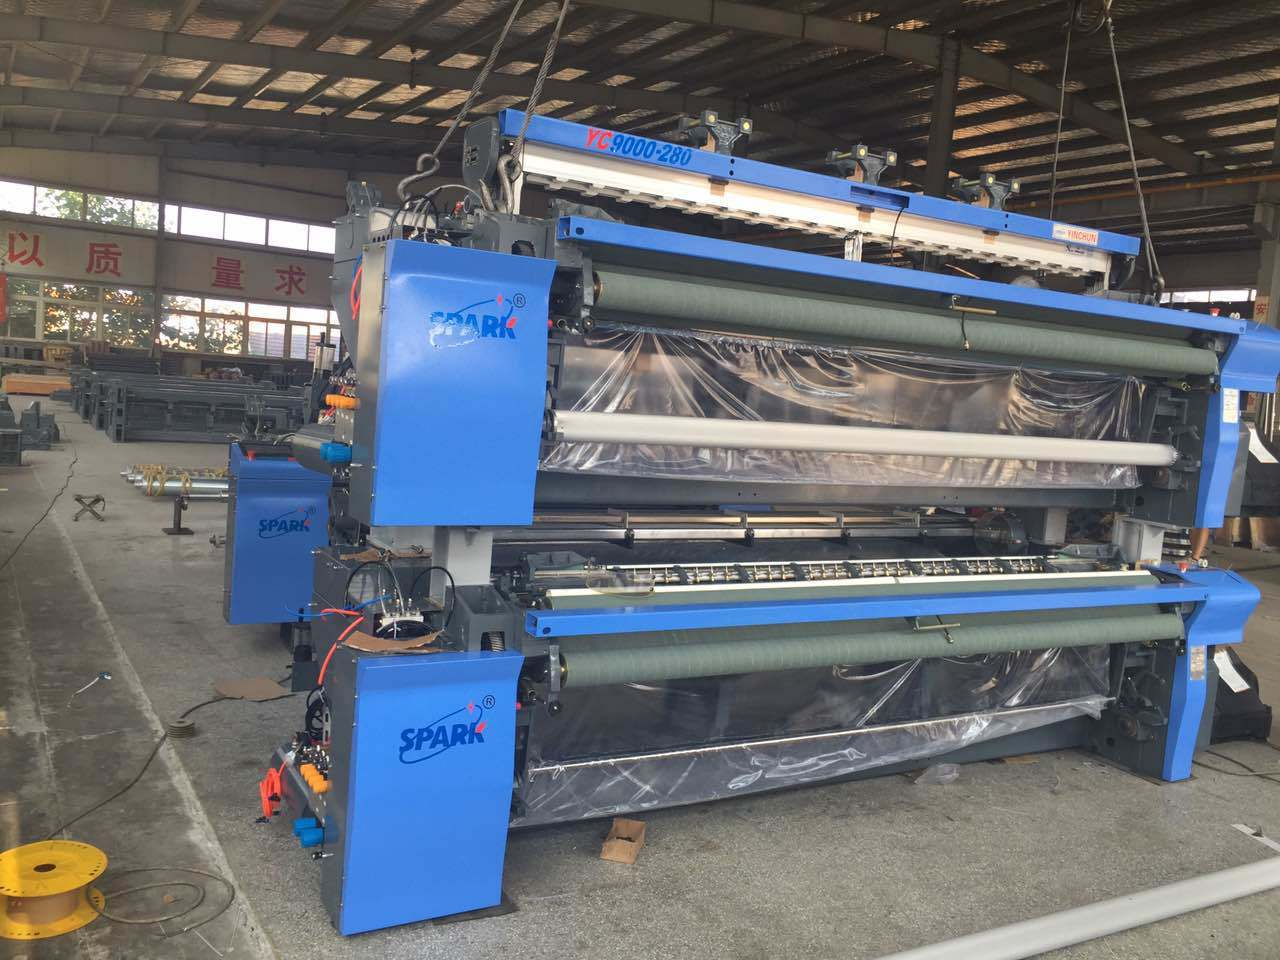 Most Energy Saving Yc9000 Air Jet Loom